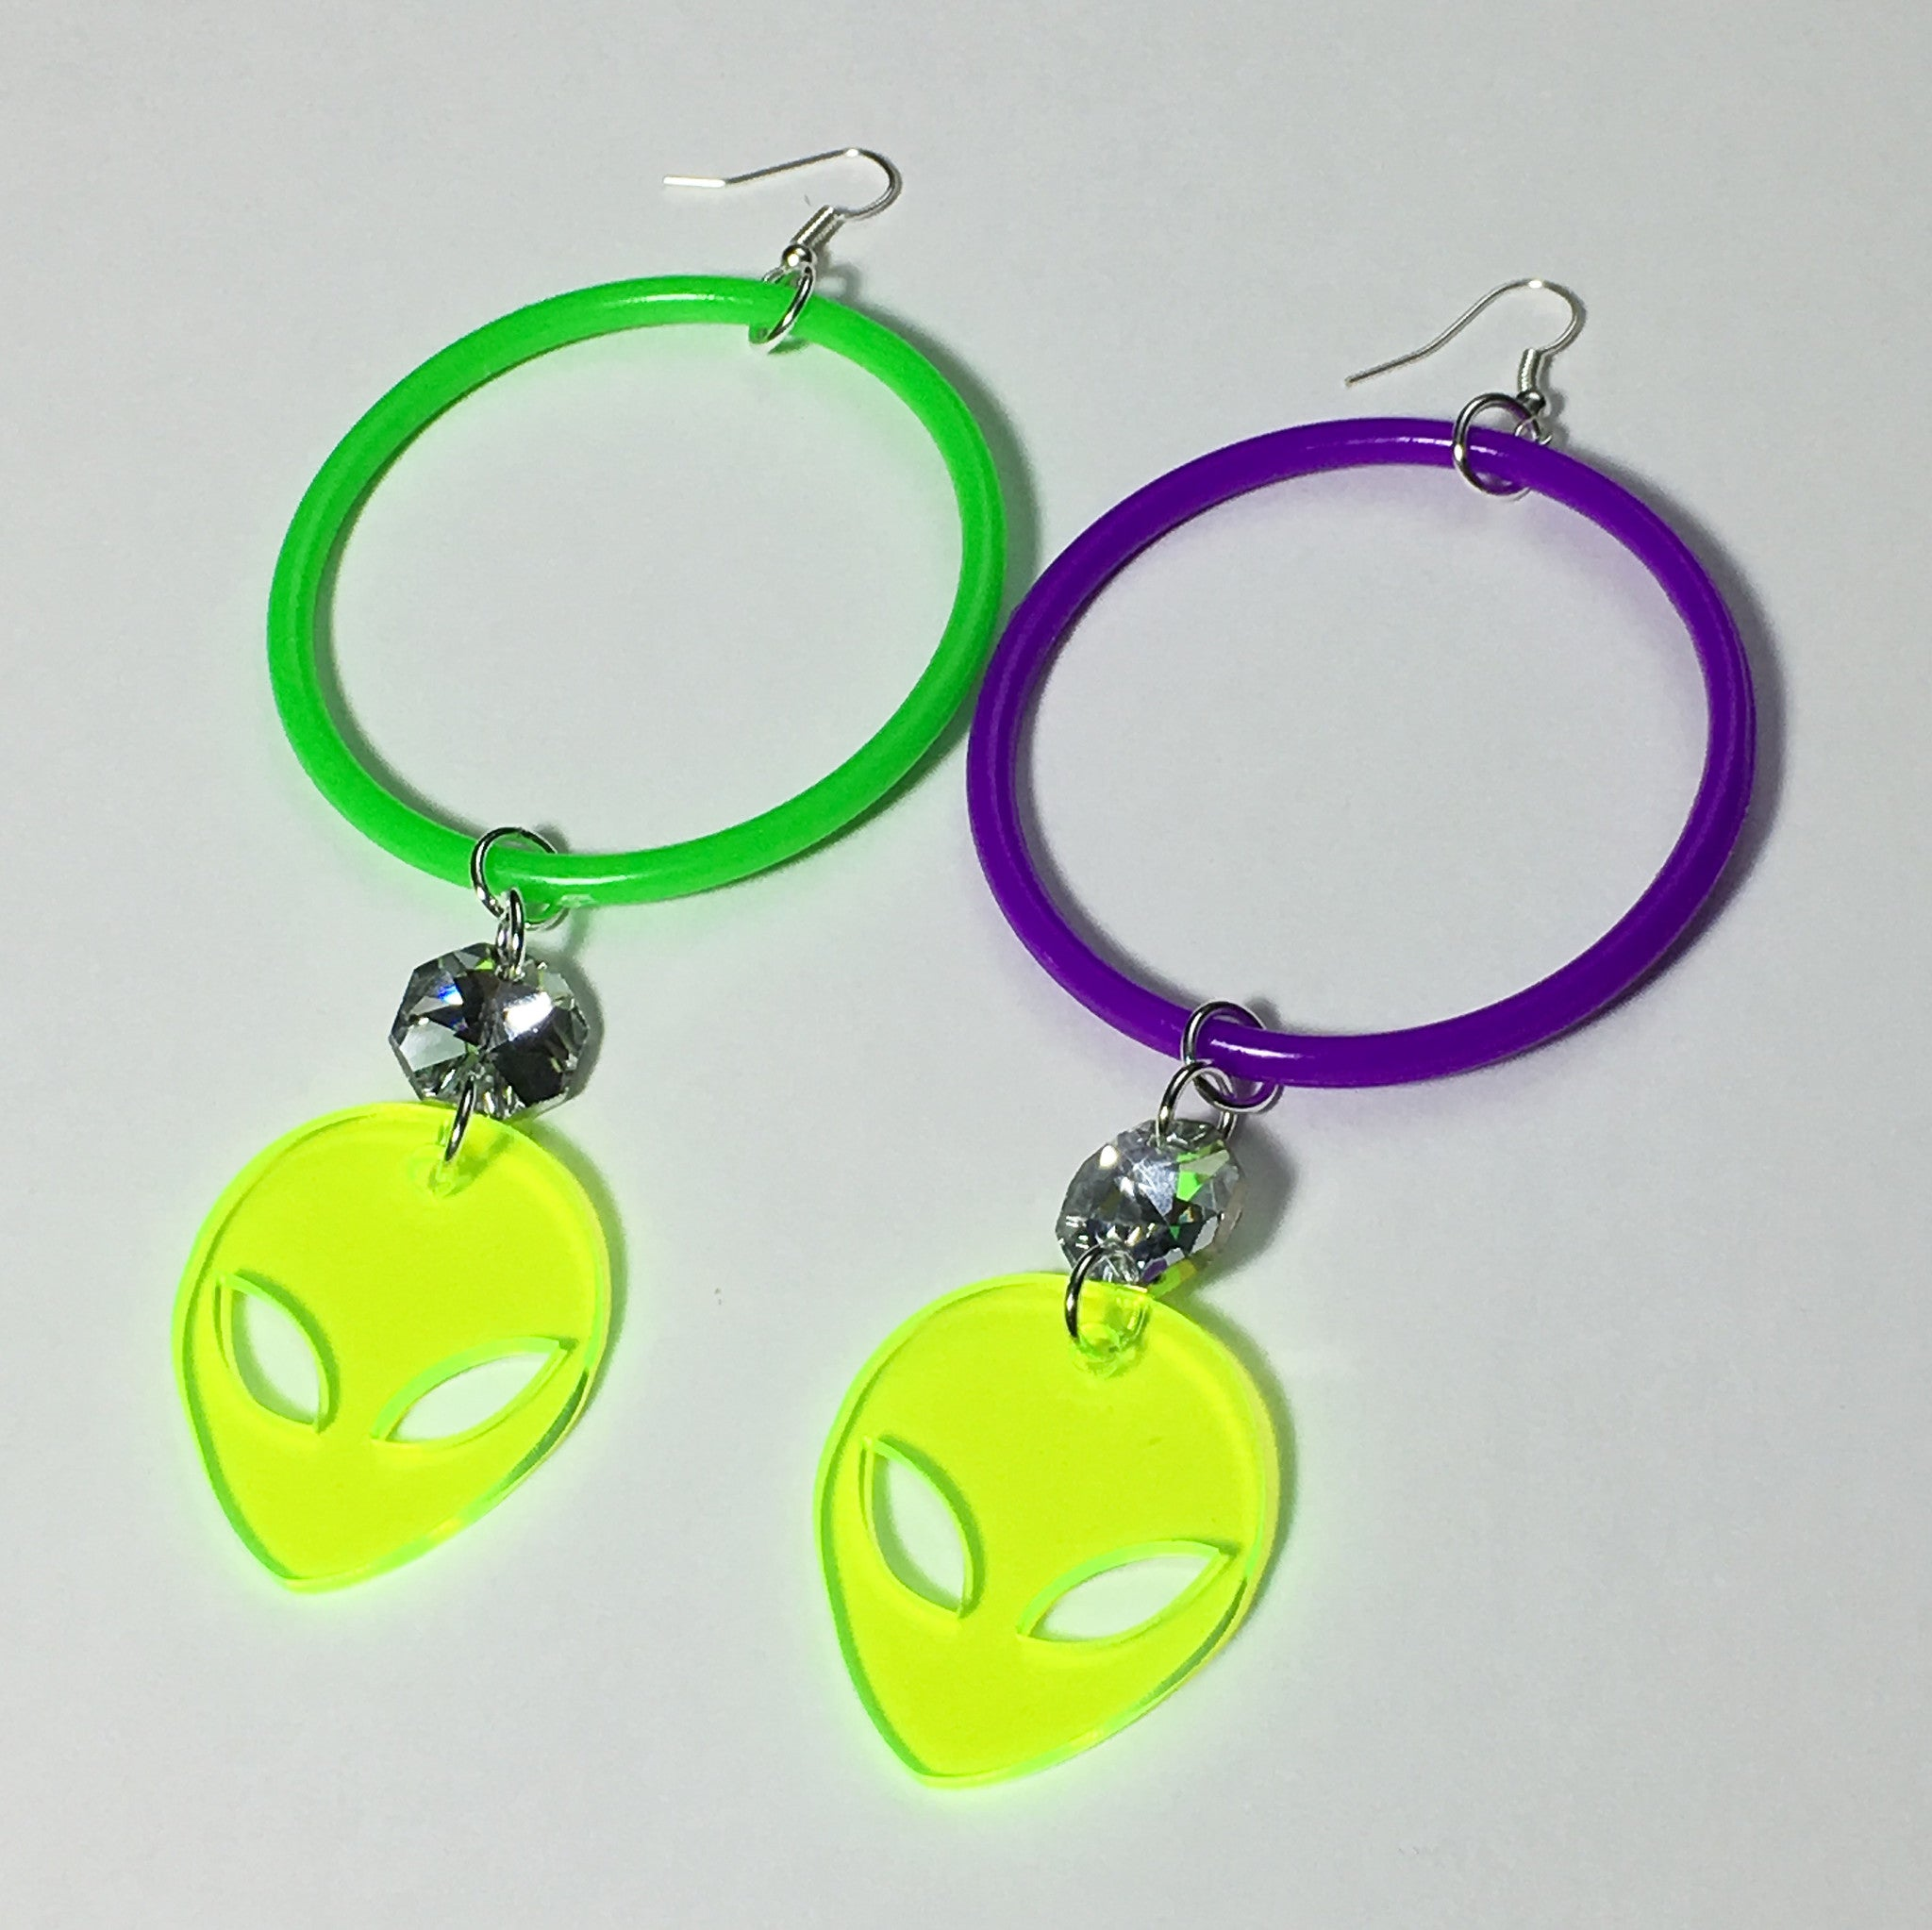 TRIXY STARR - Alien Grunge Earrings, Multi